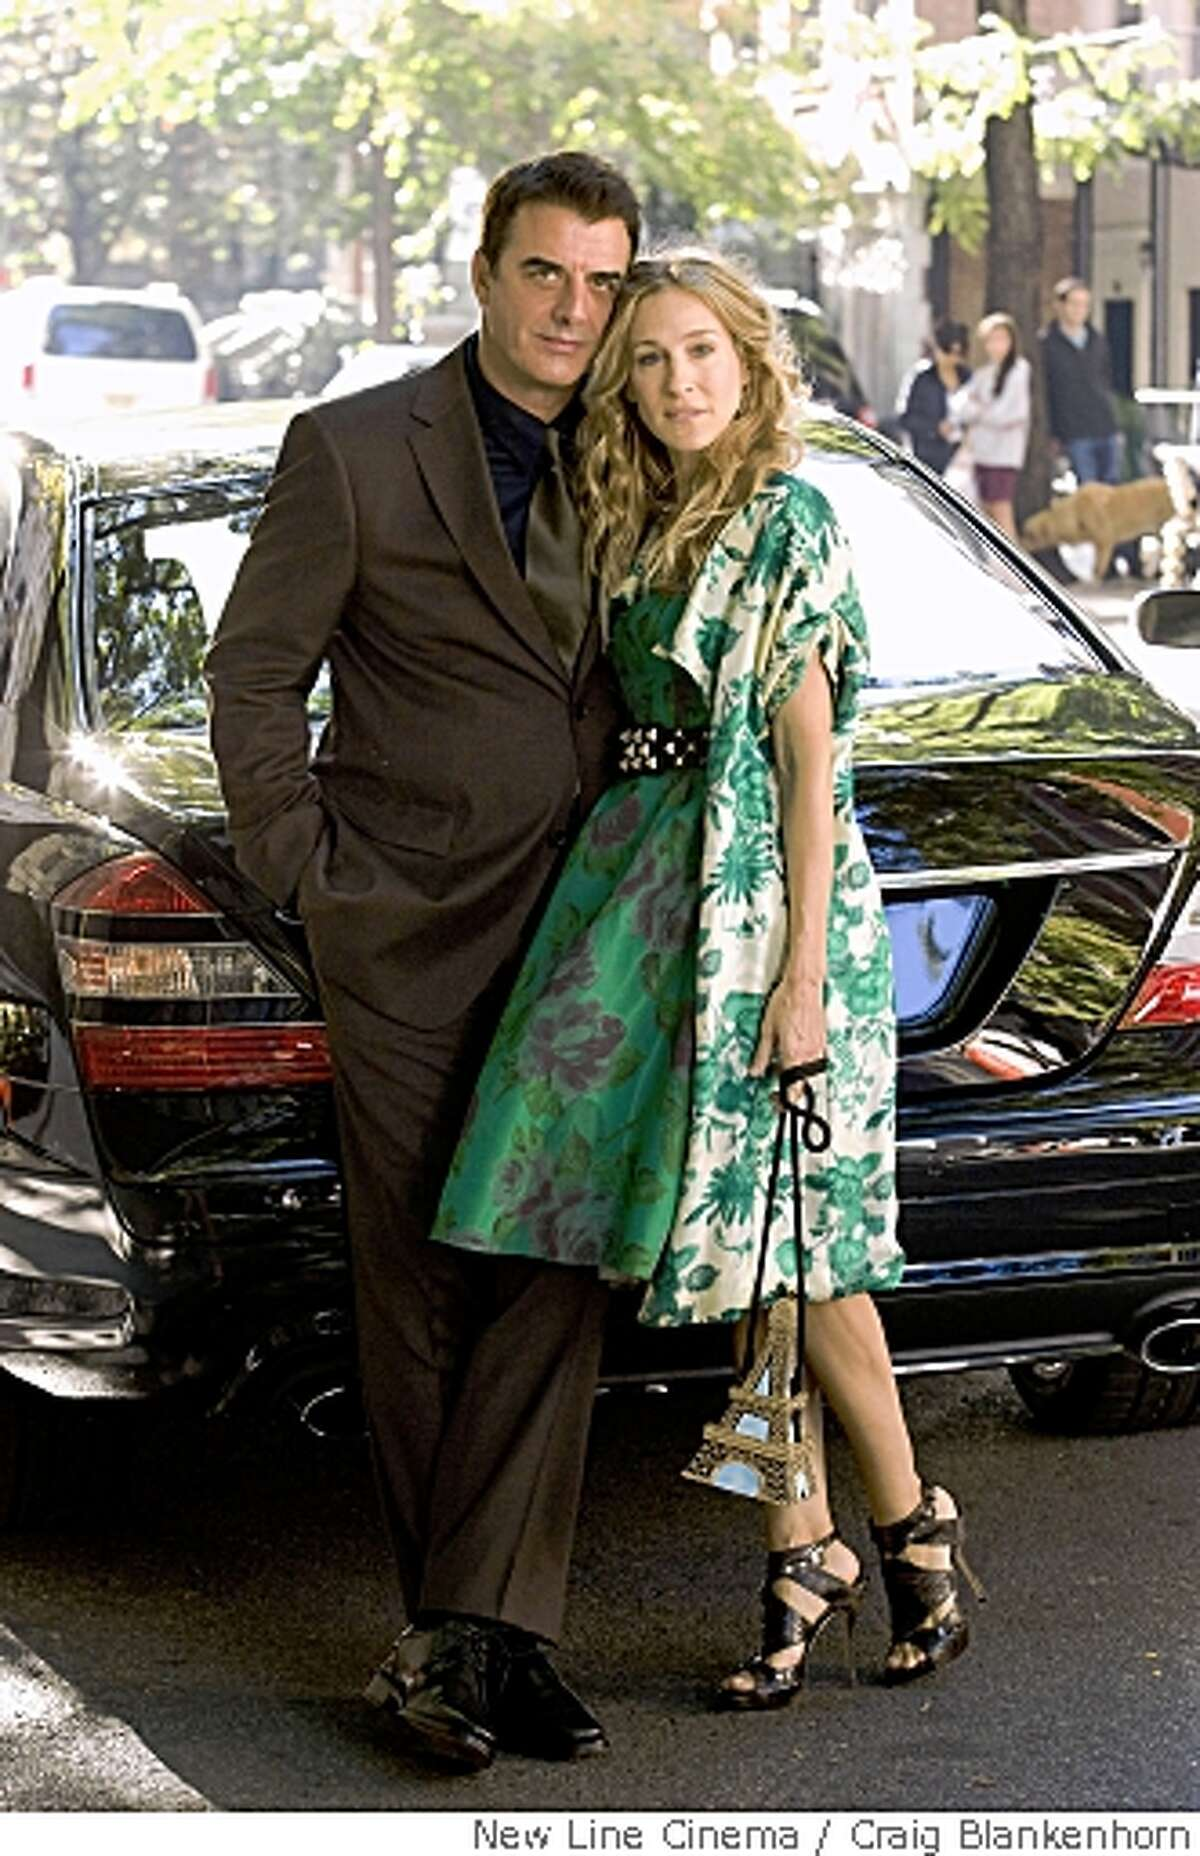 """In this image released by New Line Cinema, Chris Noth stars as Mr. Big, left, and Sarah Jessica Parker stars as Carrie Bradshaw in New Line Cinema's """"Sex in the City"""". (AP Photo/New Line Cinema,Craig Blankenhorn) ** NO SALES **"""